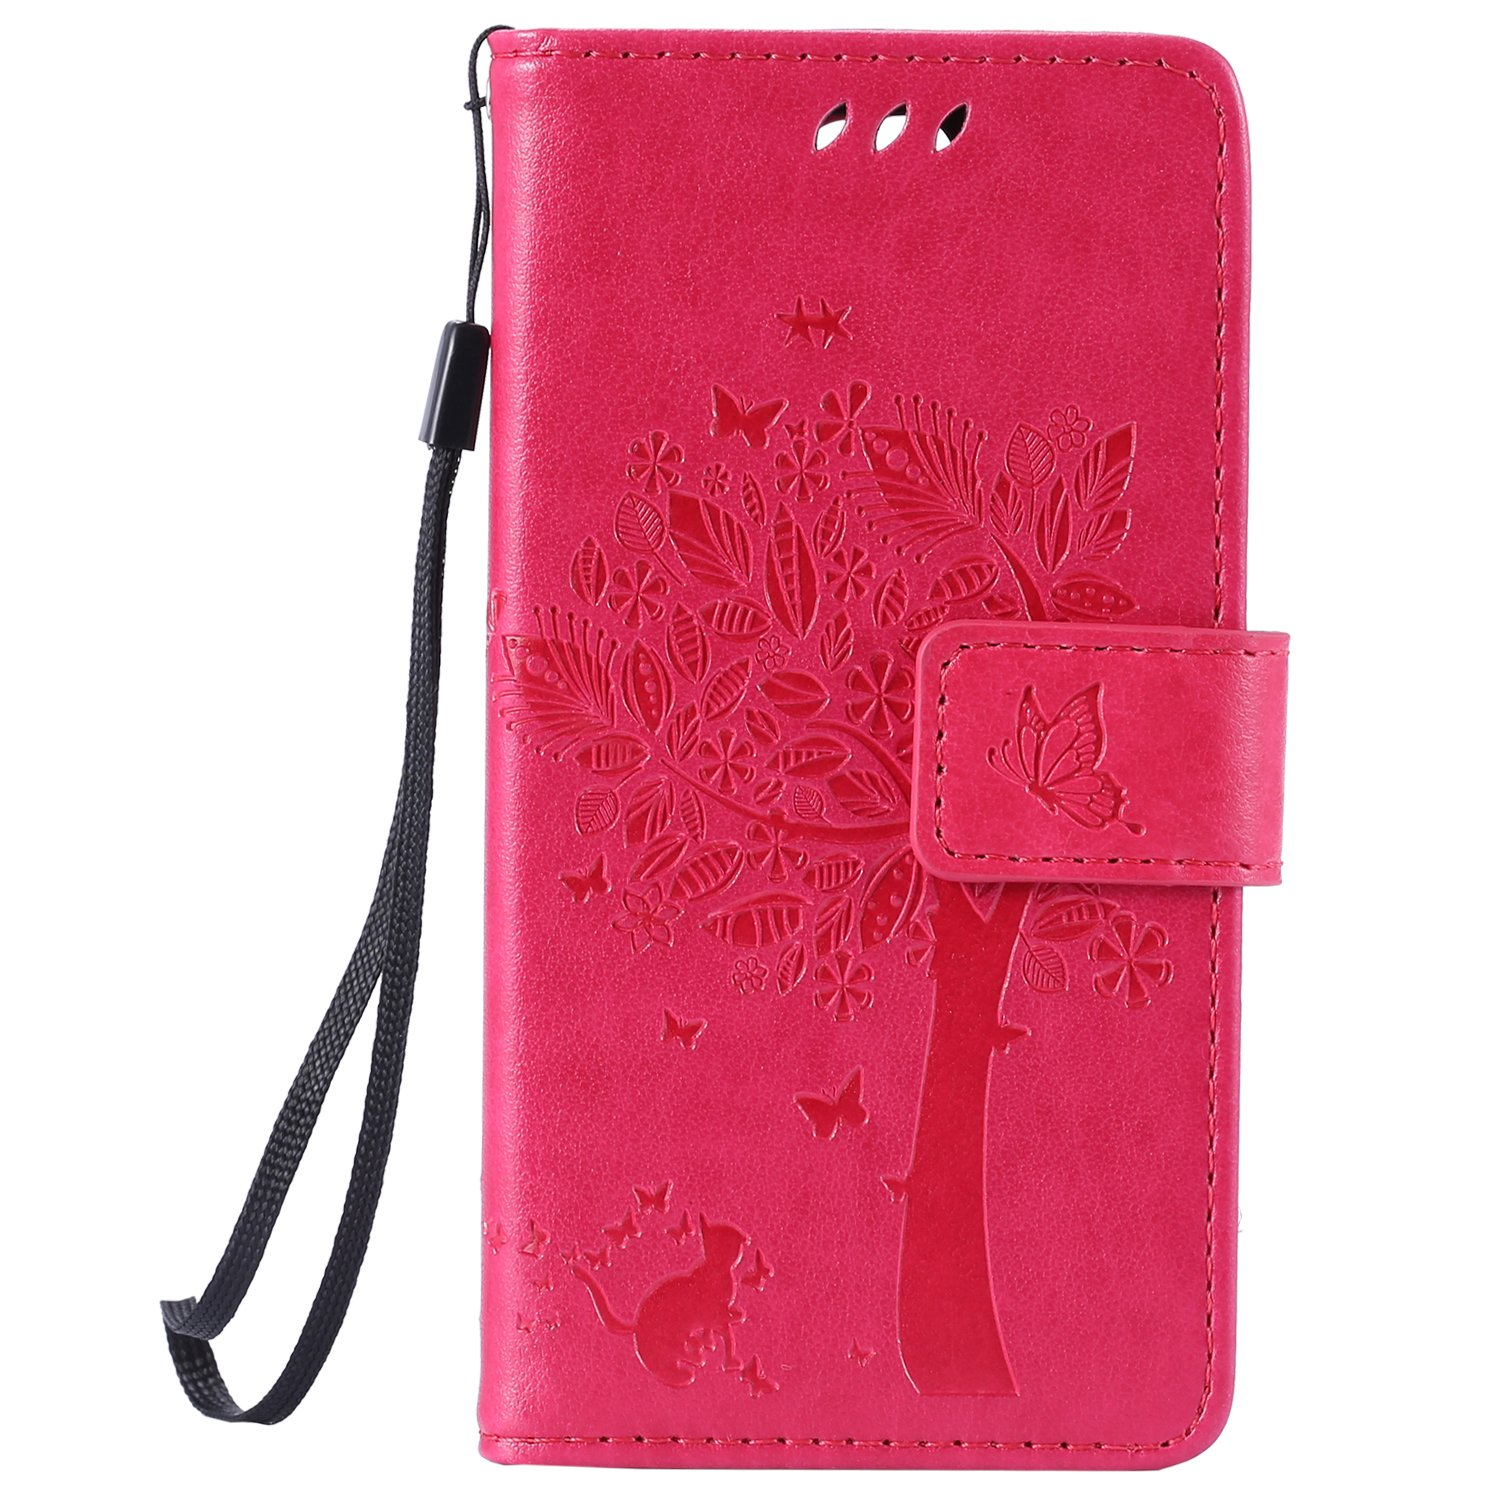 Book Case Flip Case For LG Spirit 4G LTE H440 H420 C70 4,7 Pu Leather Wallet Rose red COZY HUT LG Spirit 4G LTE H440 H420 C70 Case Leather Rose red